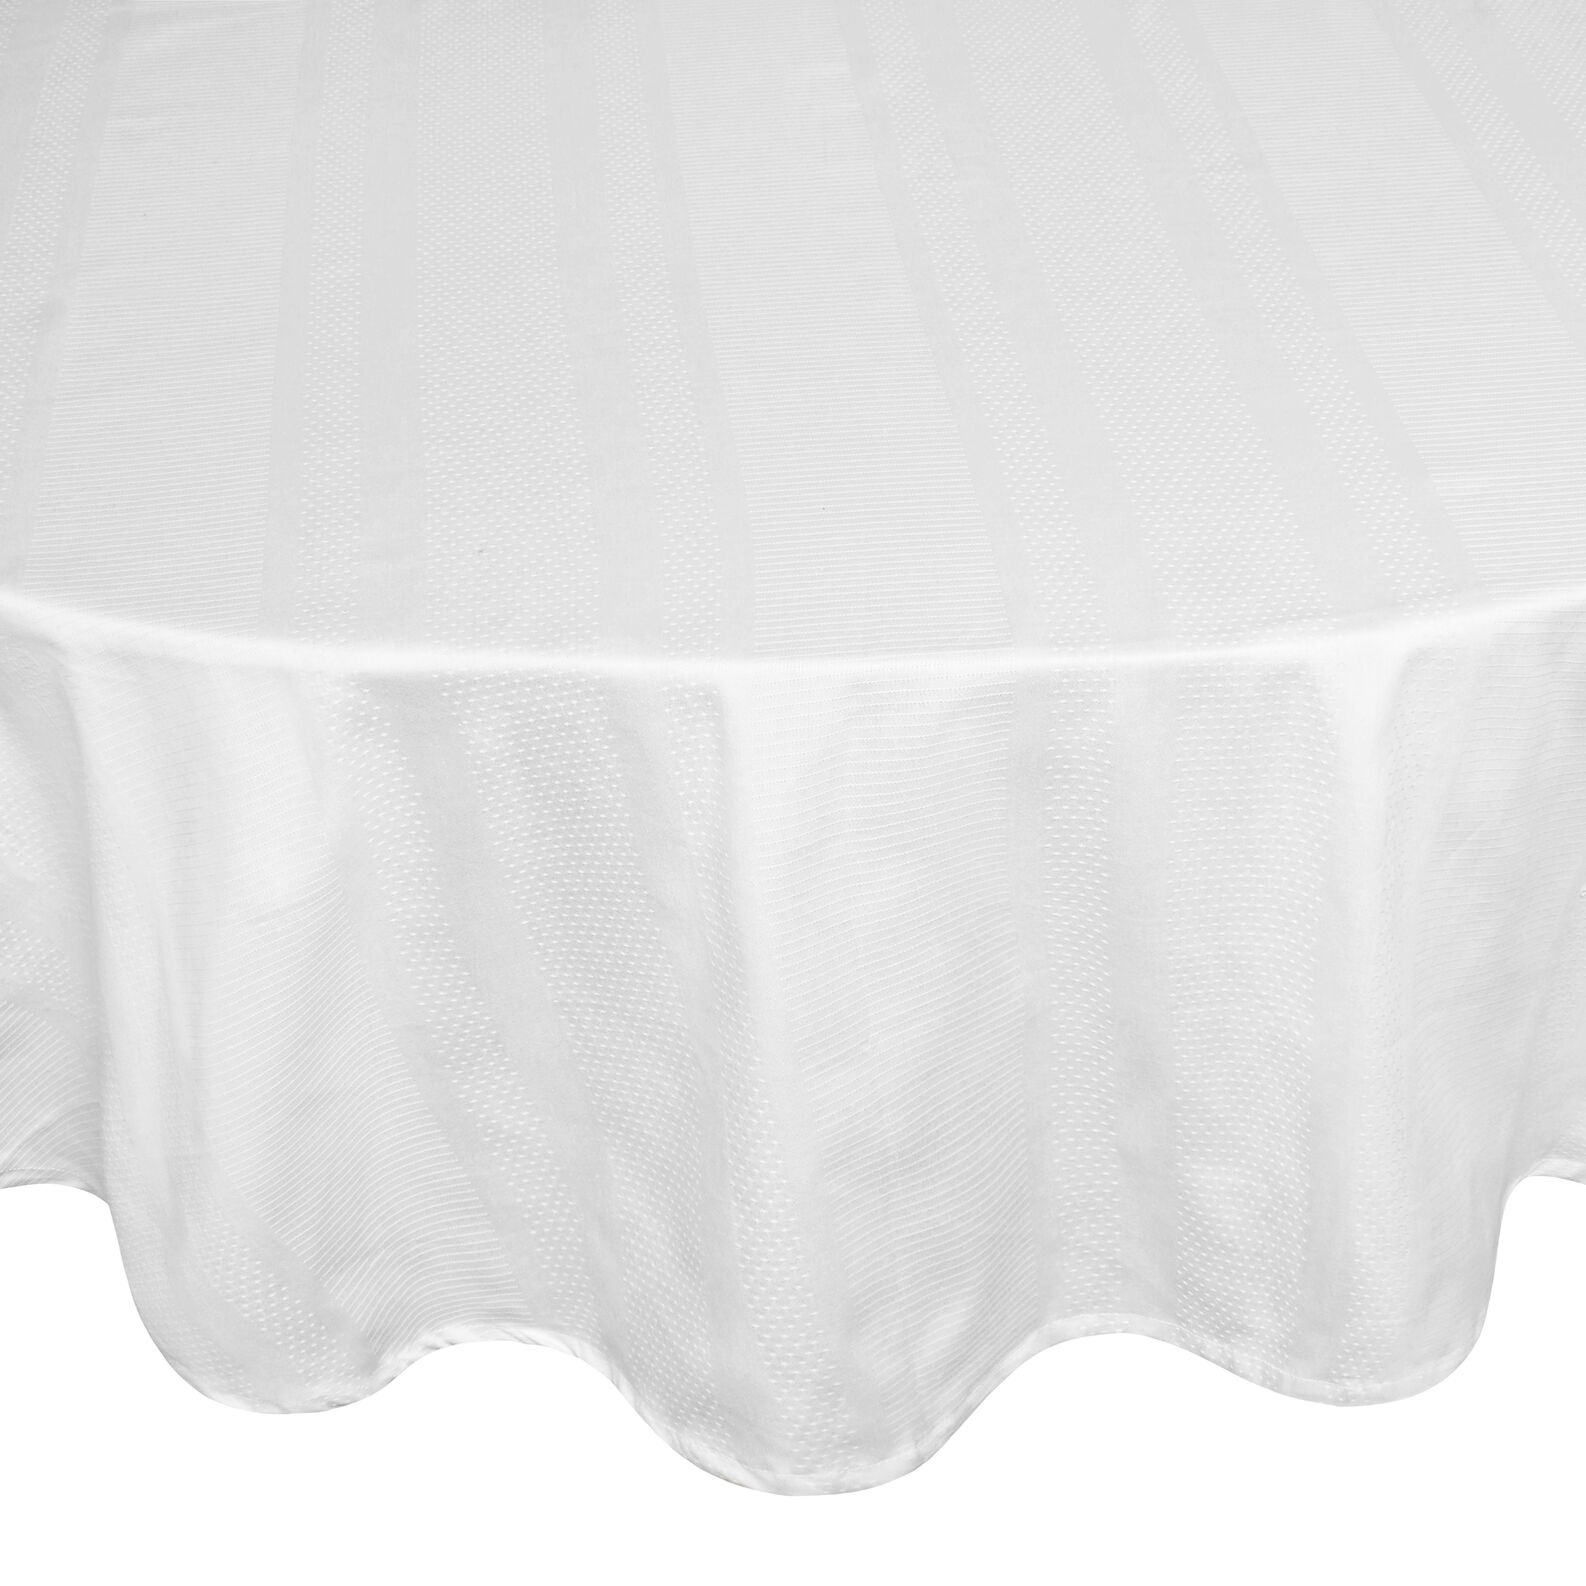 Zefiro oval tablecloth in 100% Egyptian cotton jacquard